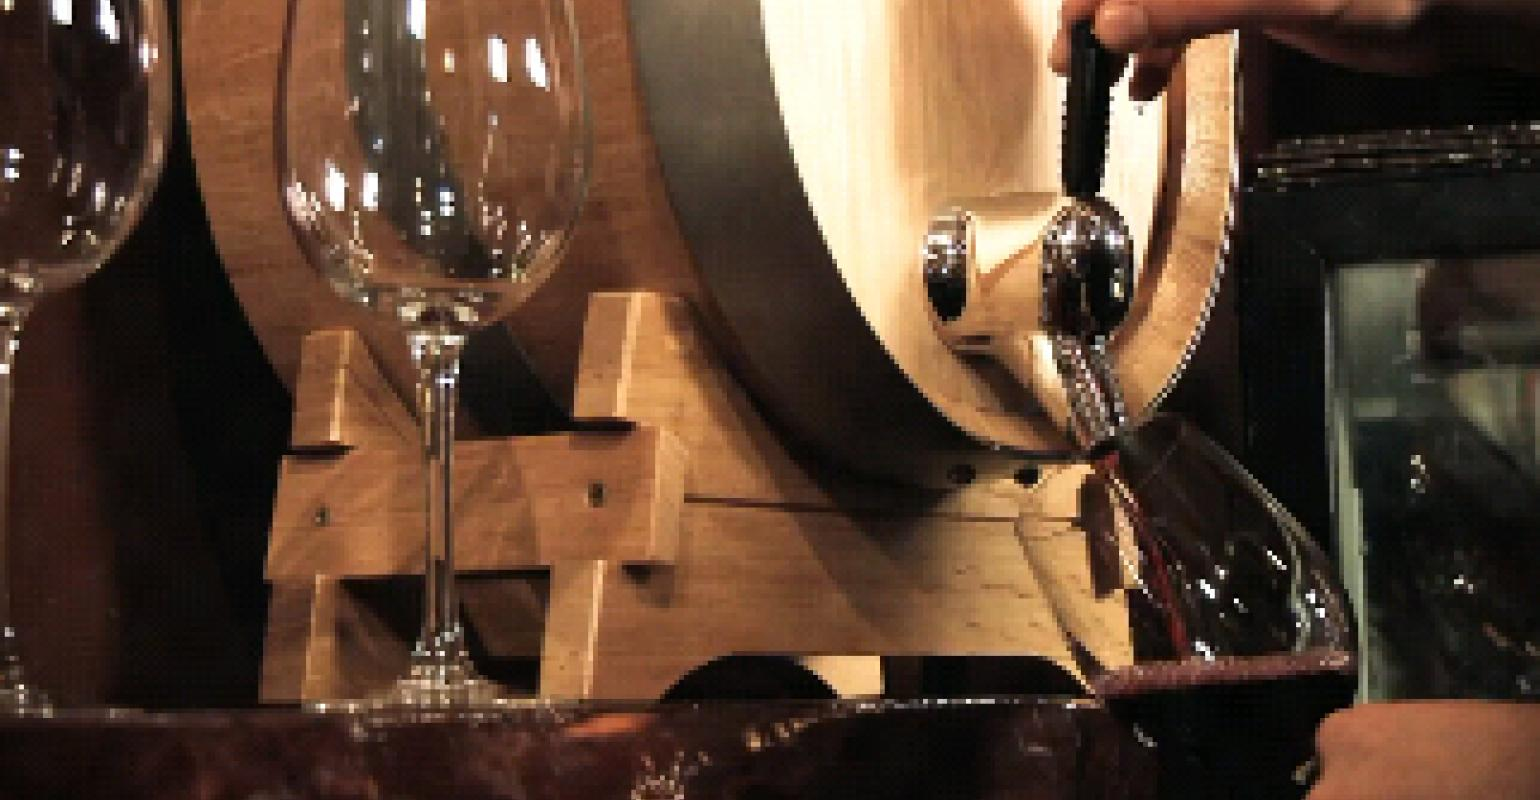 baginbox wine feeds new wineontap dispense system